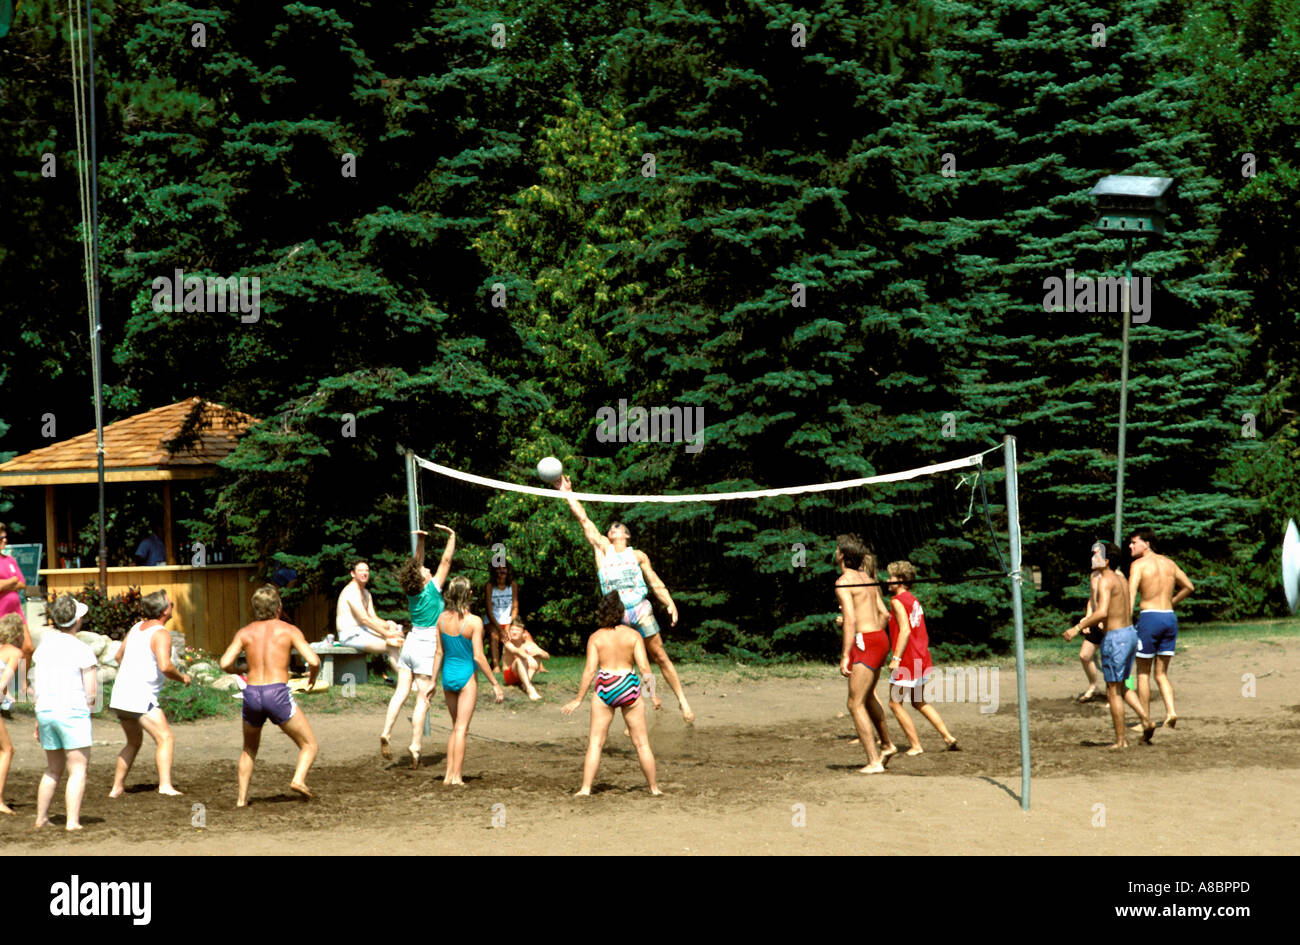 Minnesota Lake Country Volleyball at Grand View Lodge on Gull Lake Brainerd MN - Stock Image